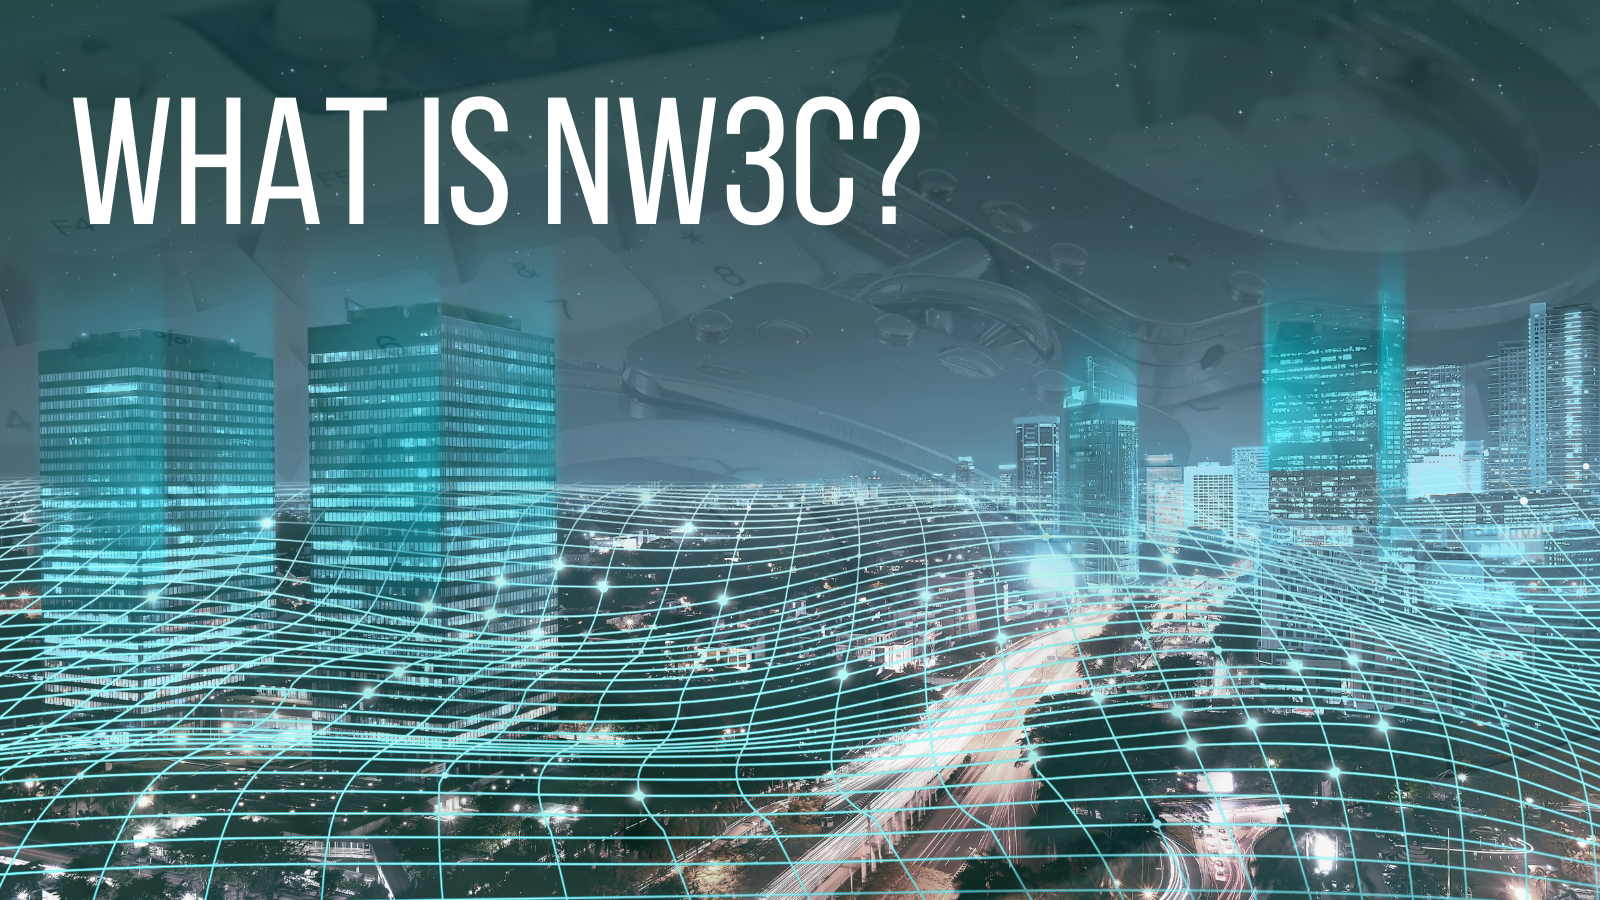 What is NW3C?